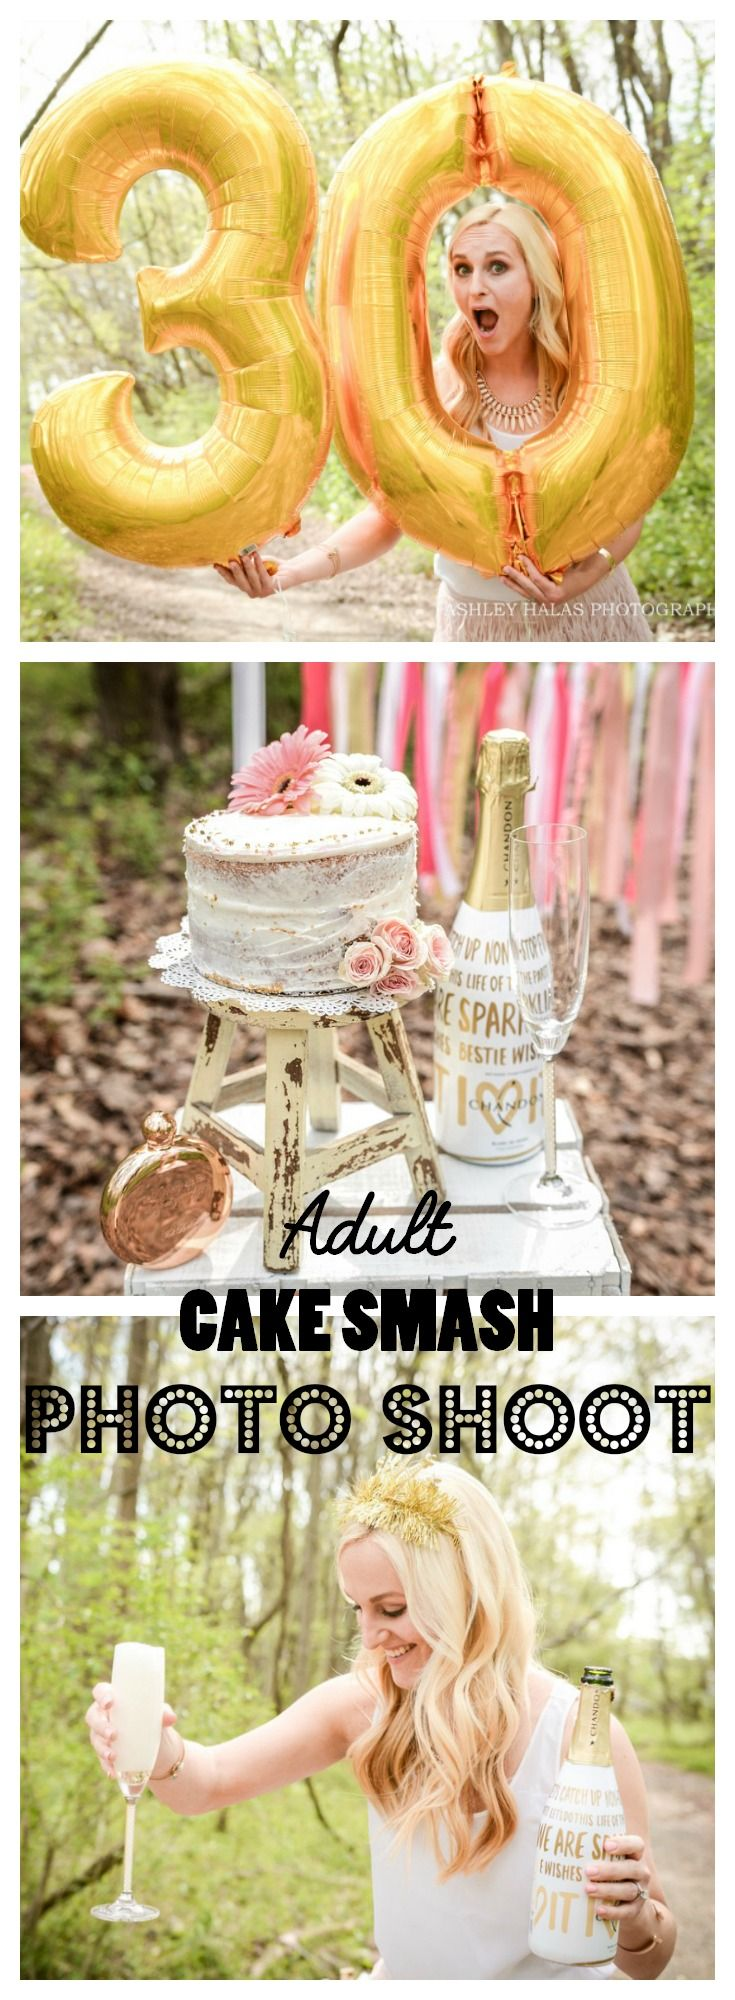 Adult Cake Smash Photo Shoot